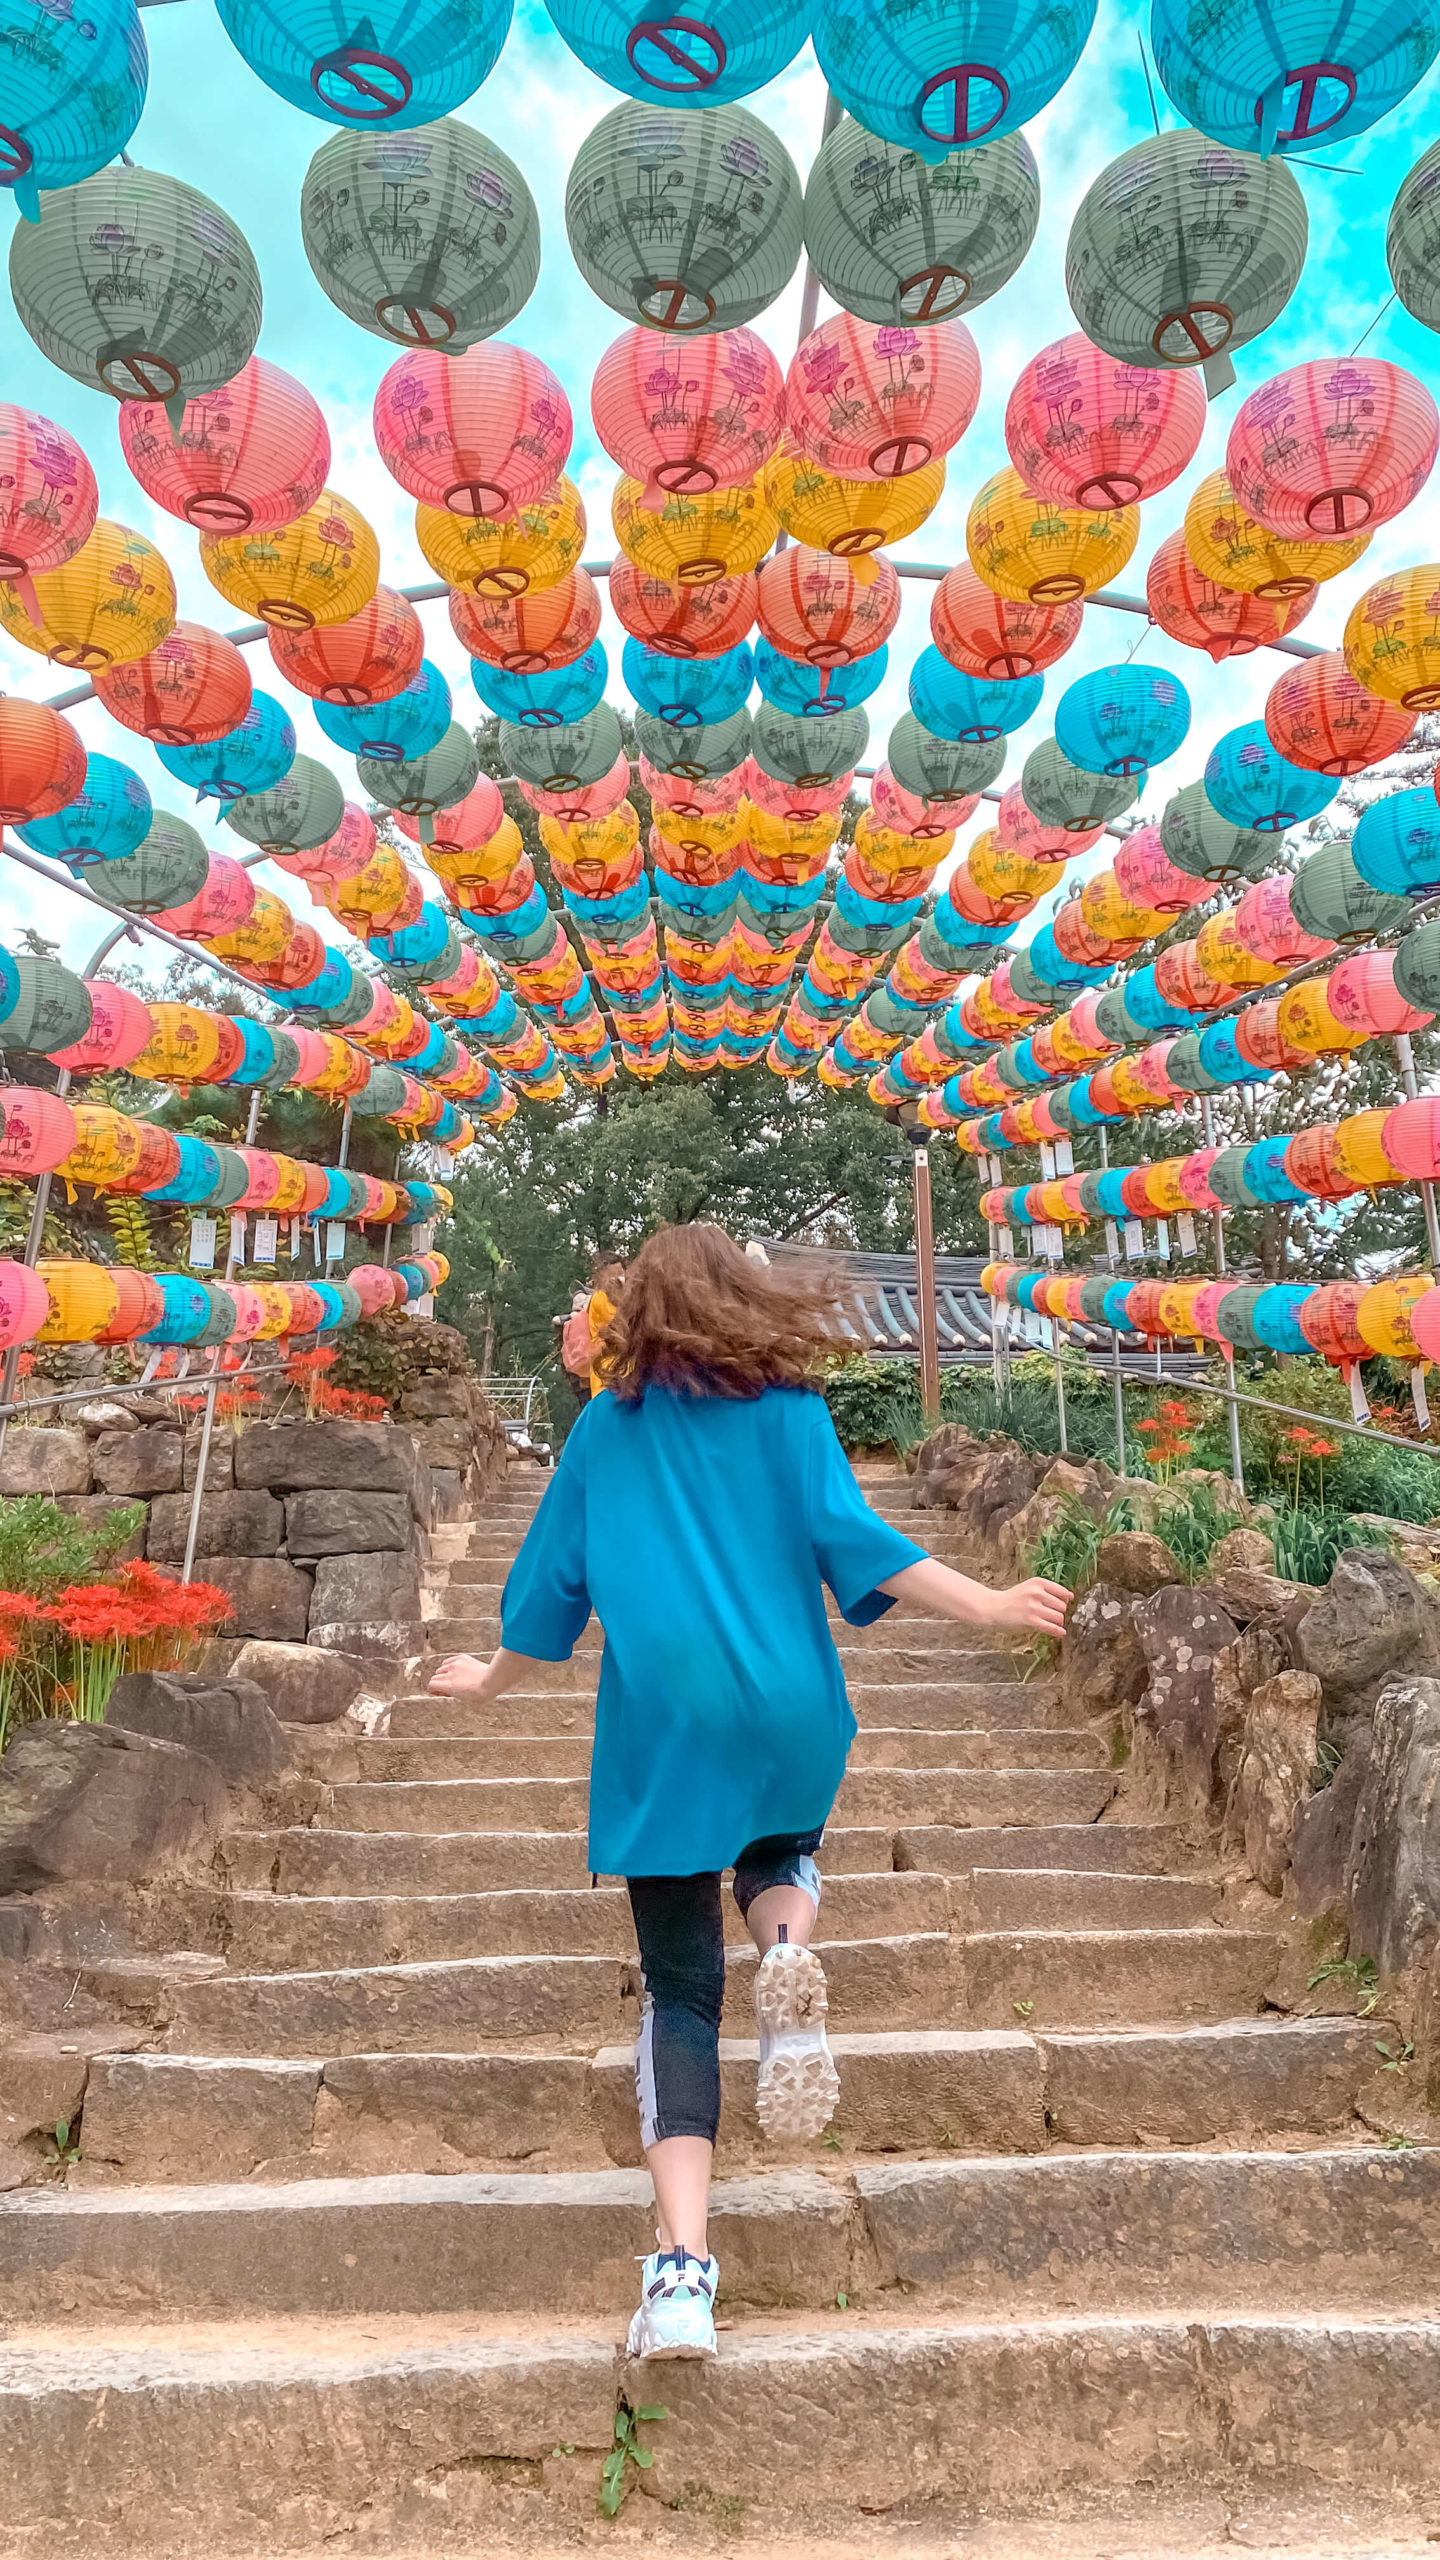 what I wore in Gongju city: fii running up stone steps in an easy comfy travel outfit of a light blue oversized t-shirt and workout leggings. Above the stairs are arches of multicoloured lanterns.